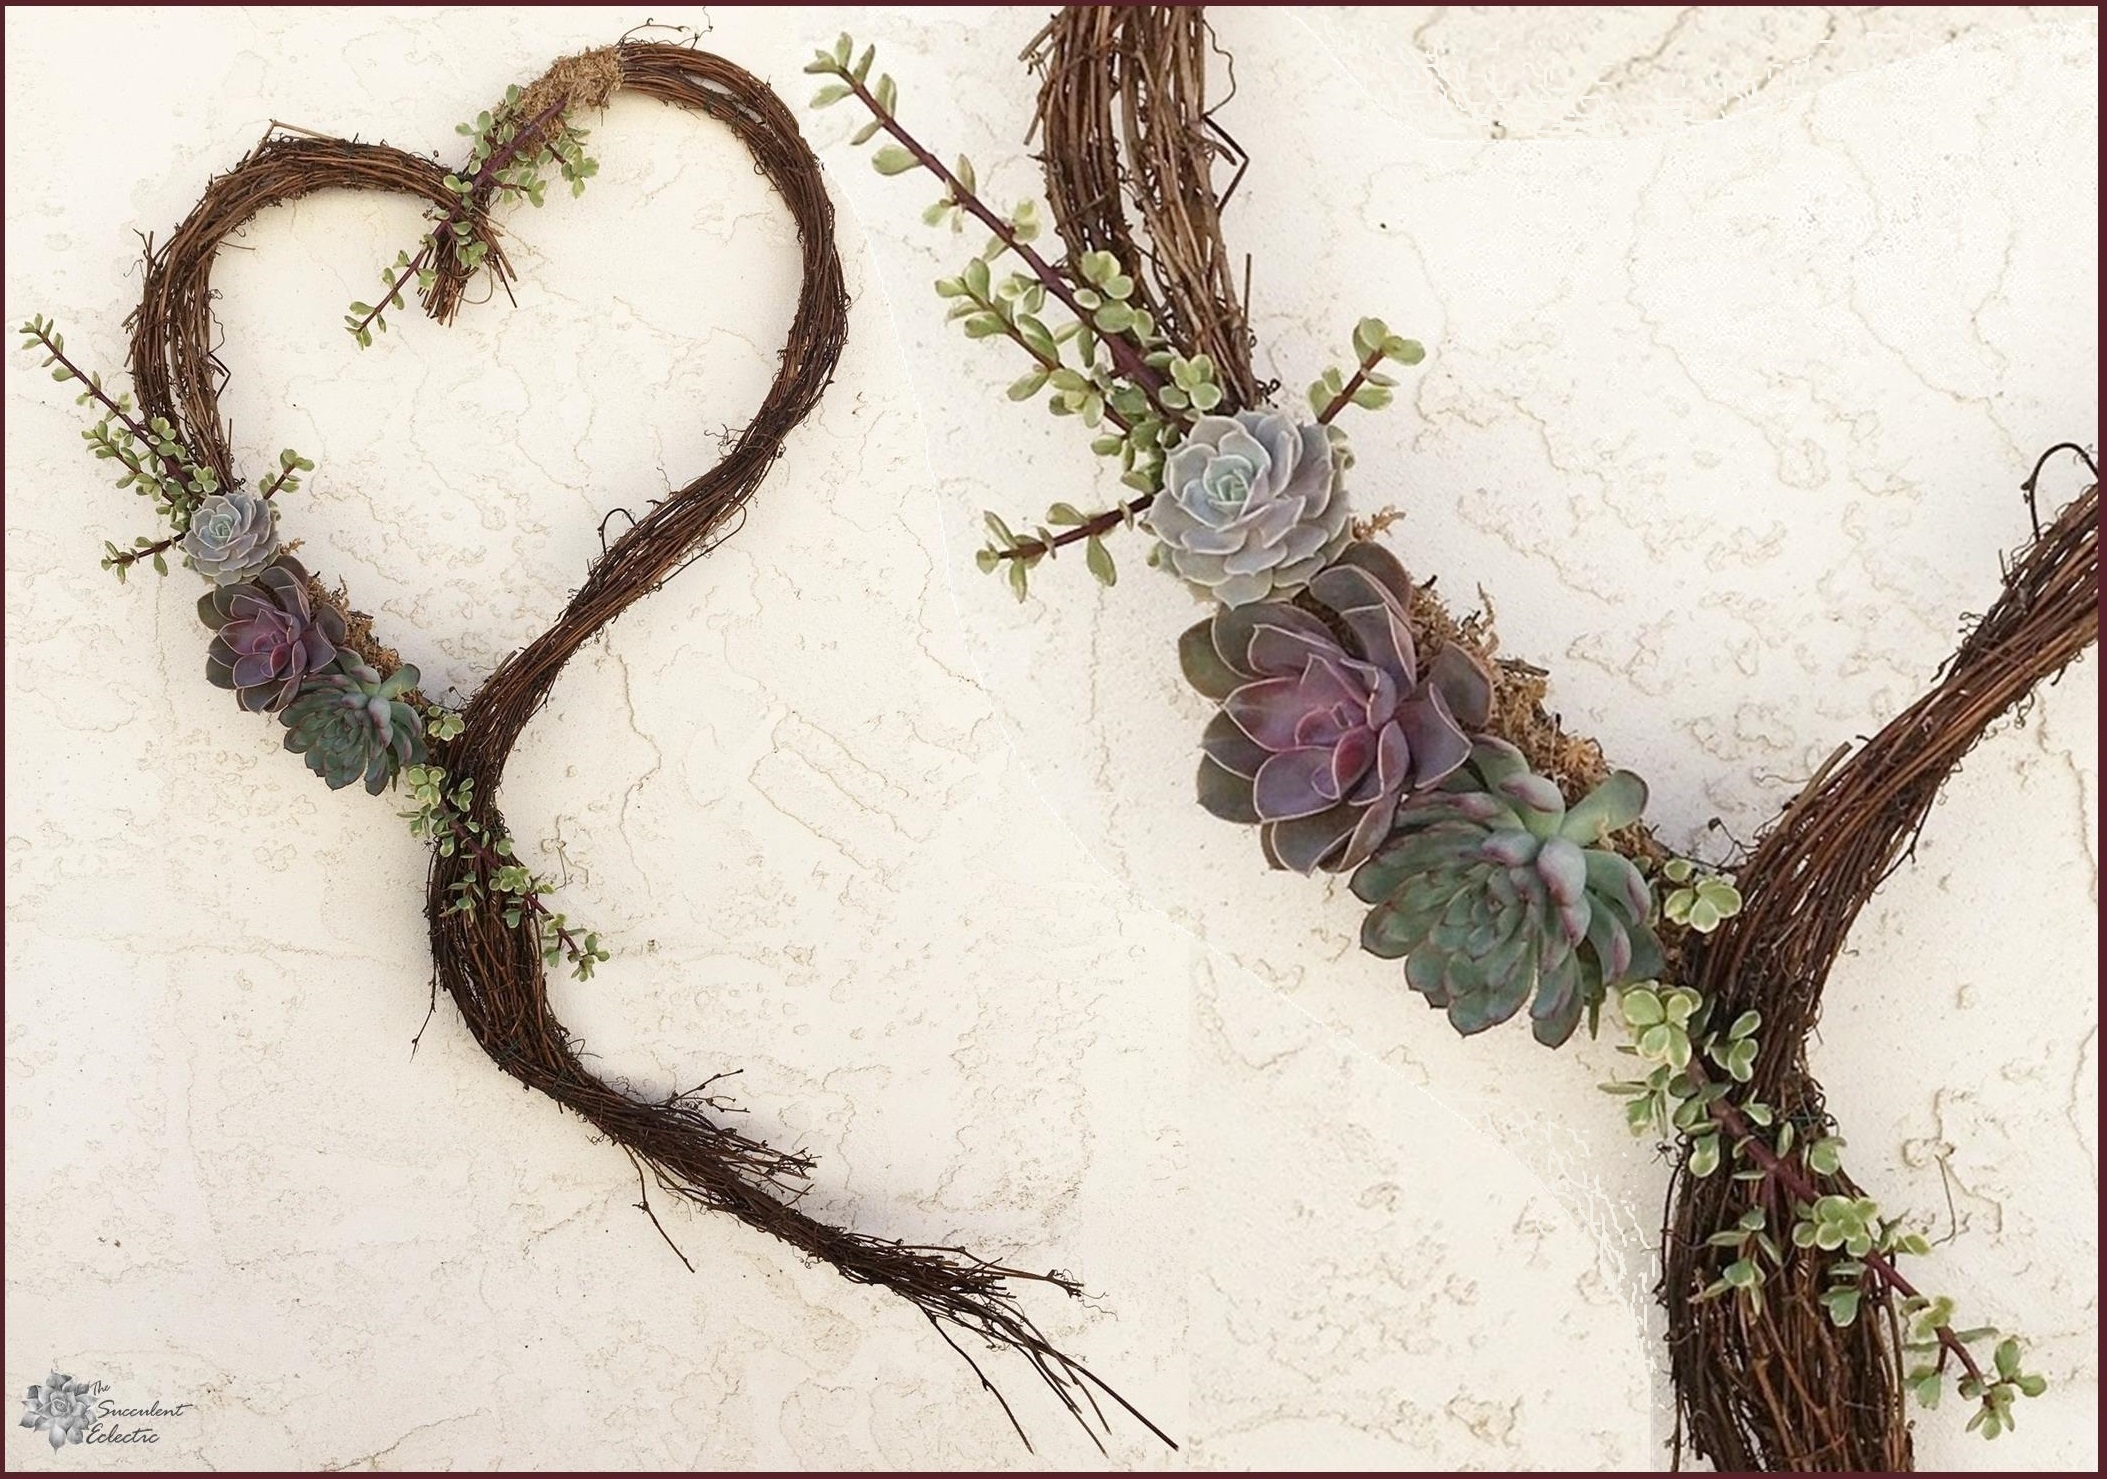 DIY Grapevine Heart Wreath with Live Succulents!